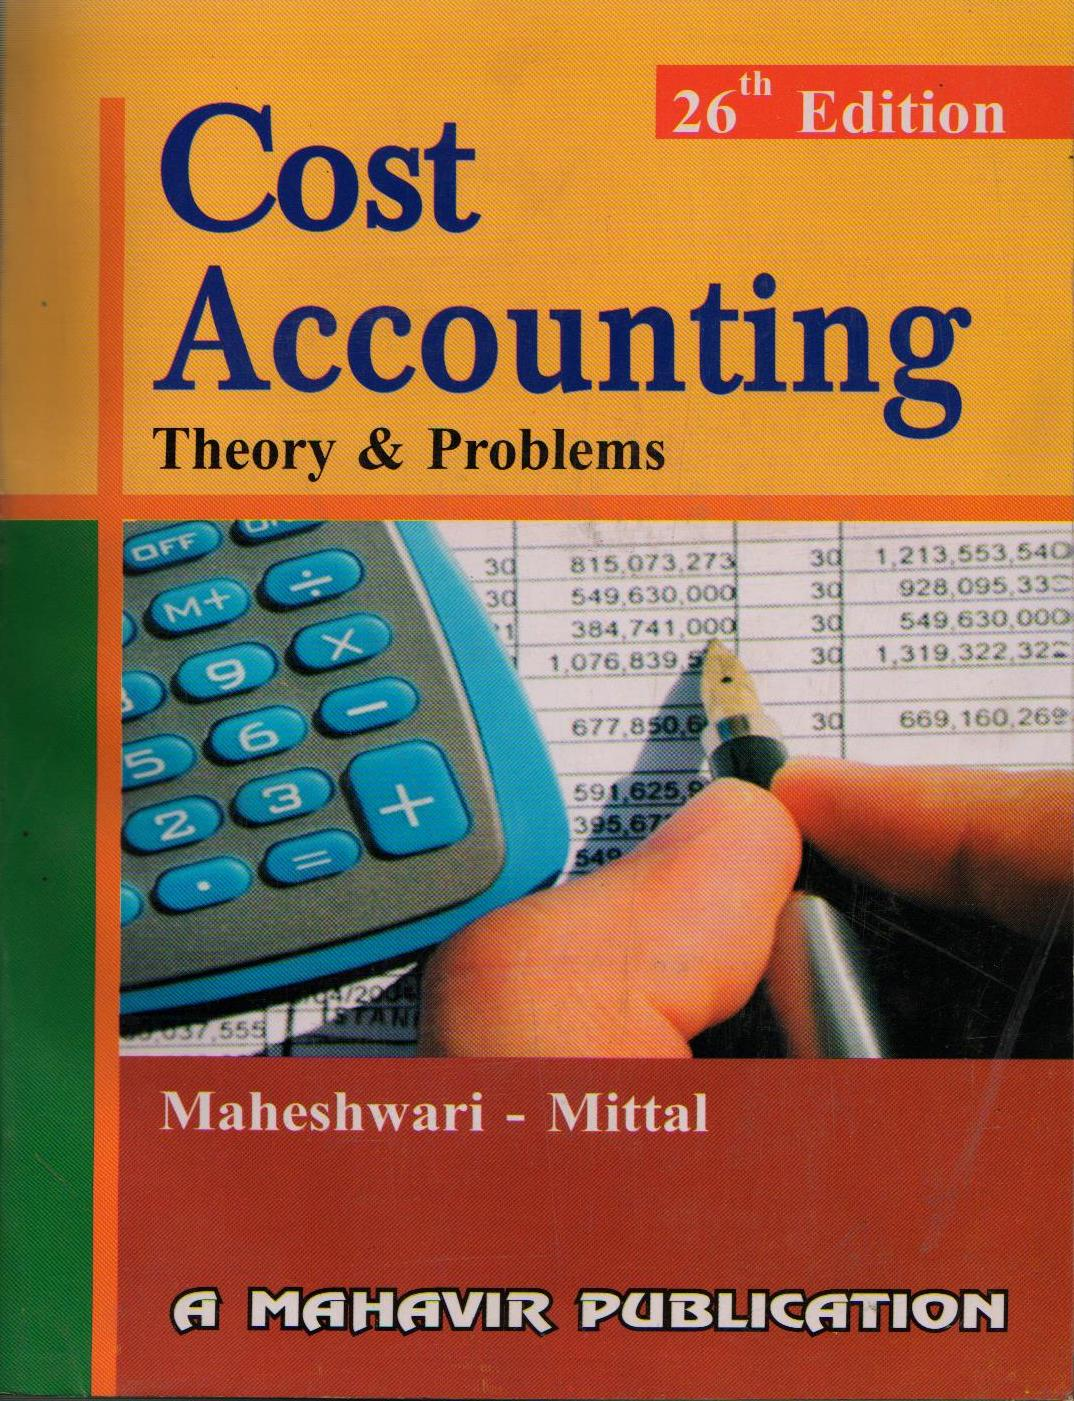 cost-accounting-theory-and-problems